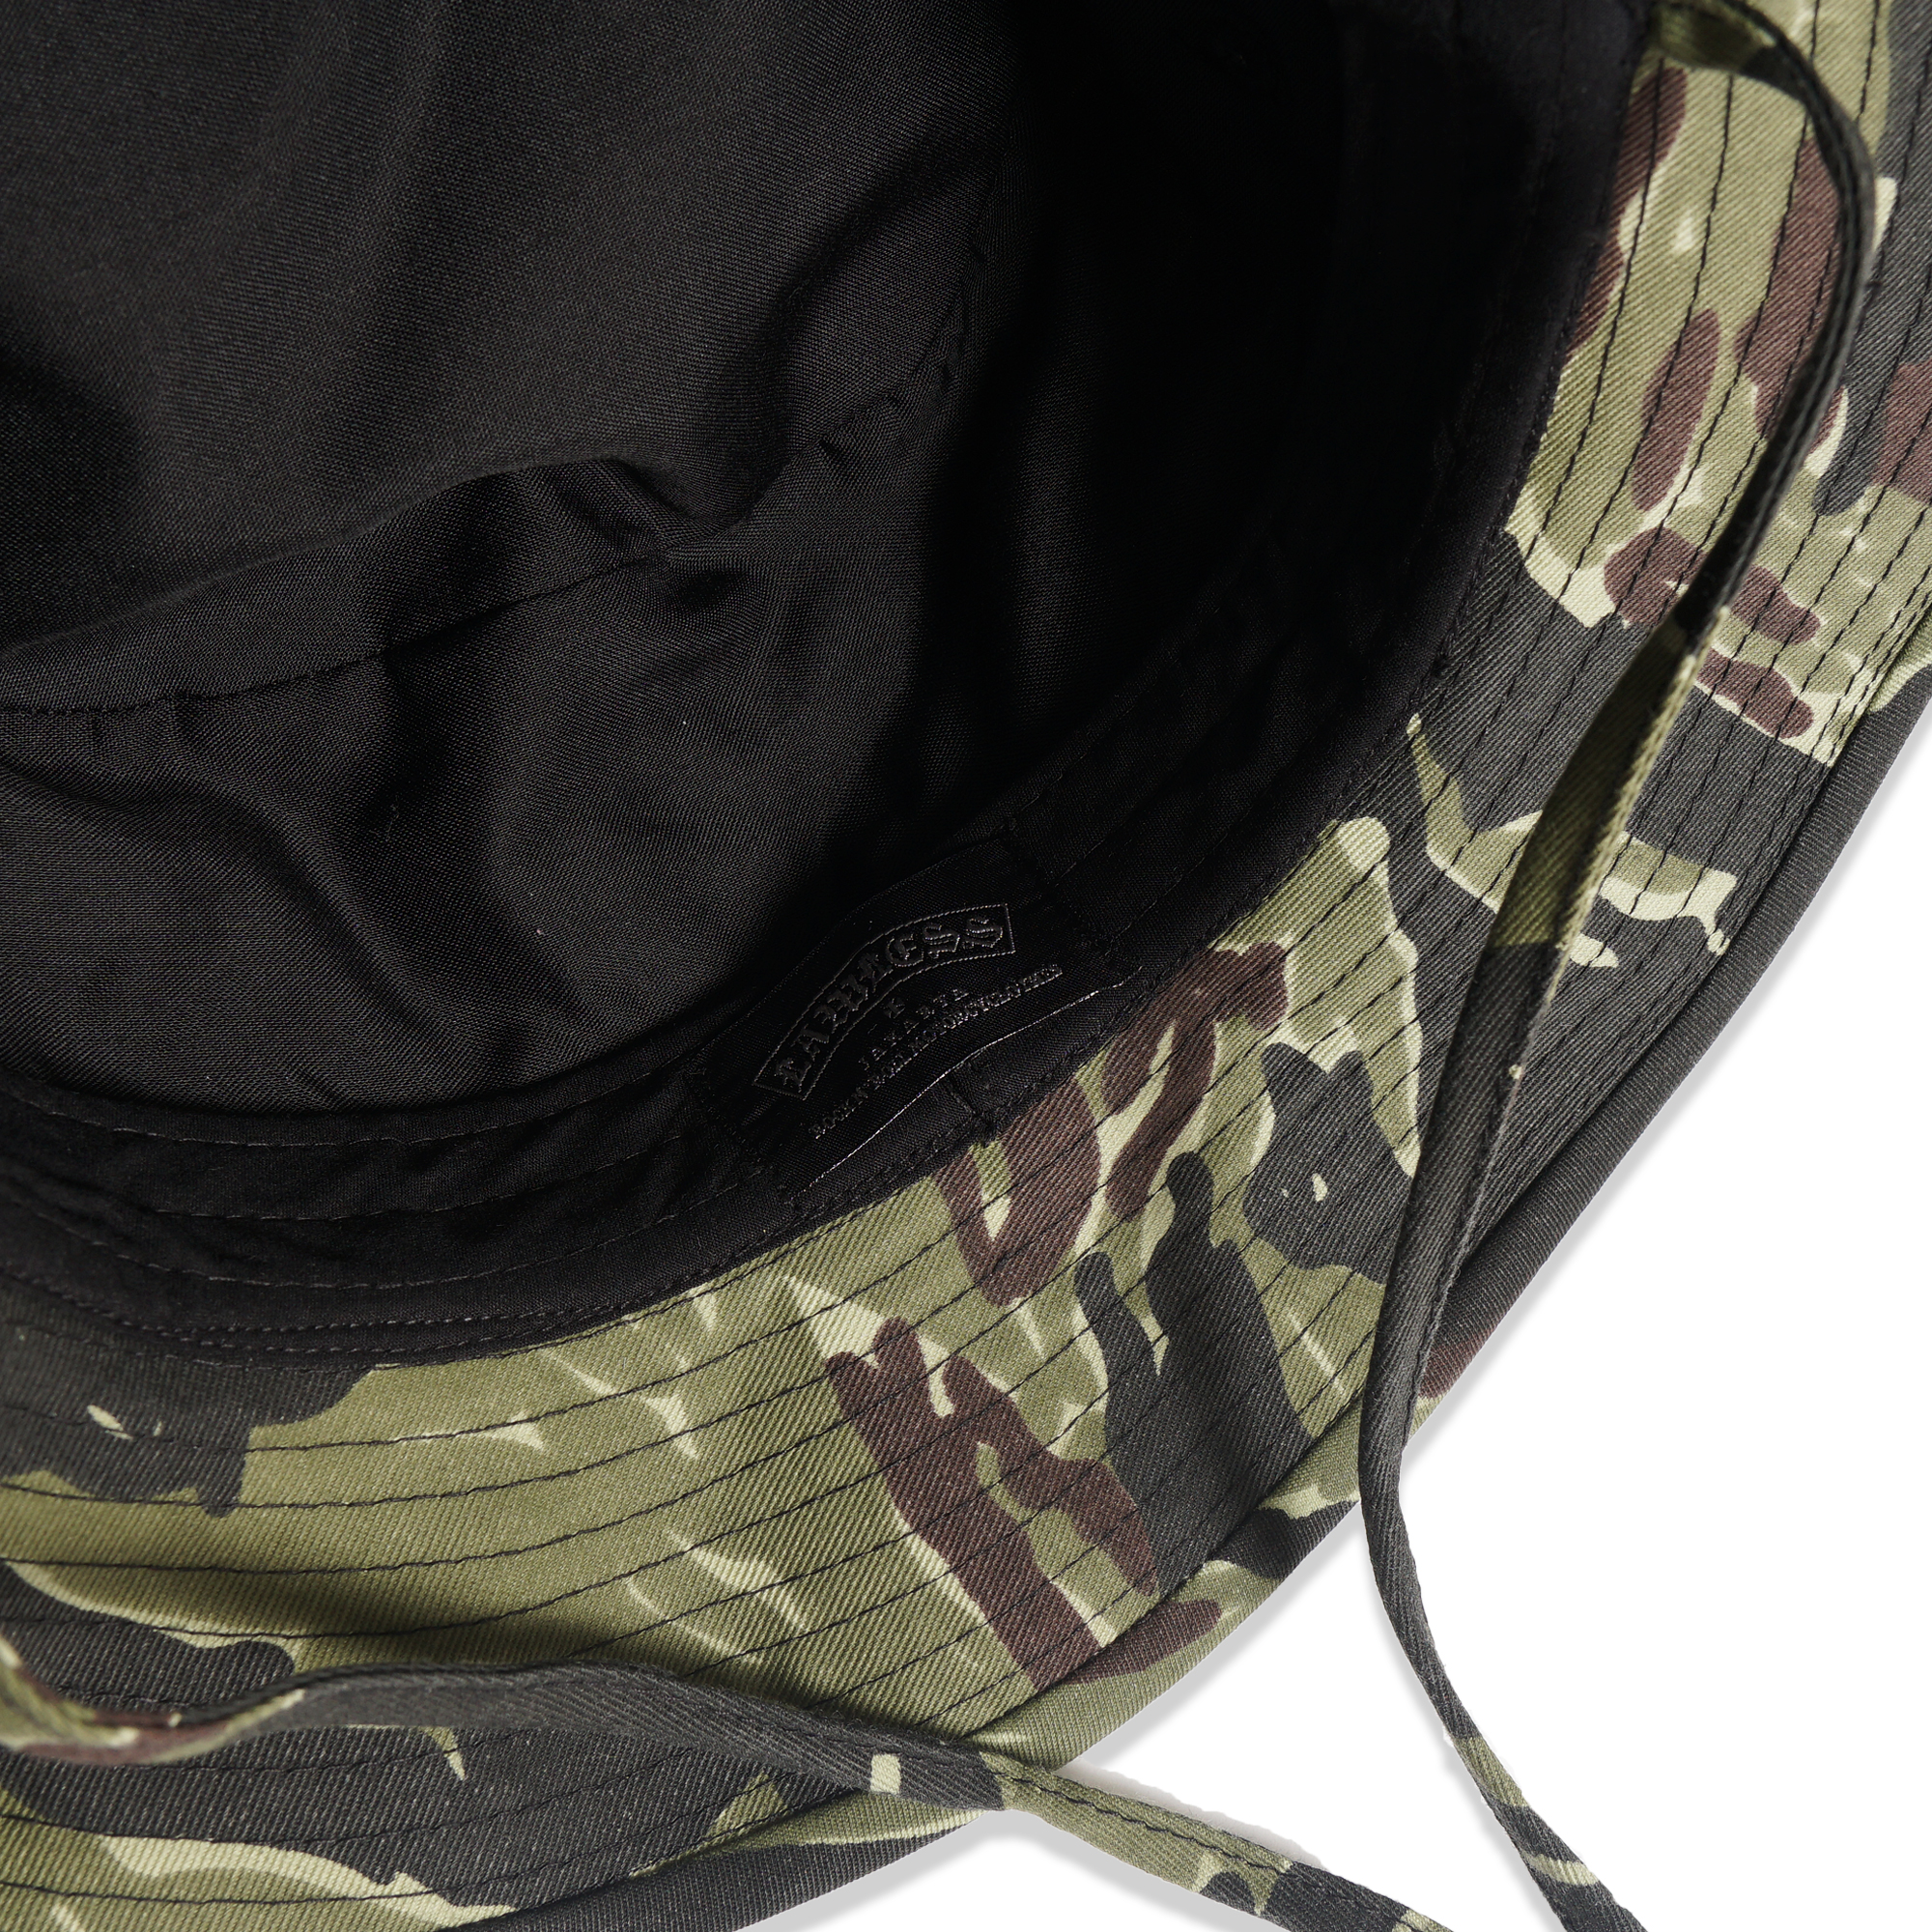 lawless-bucket-hat-army-detail